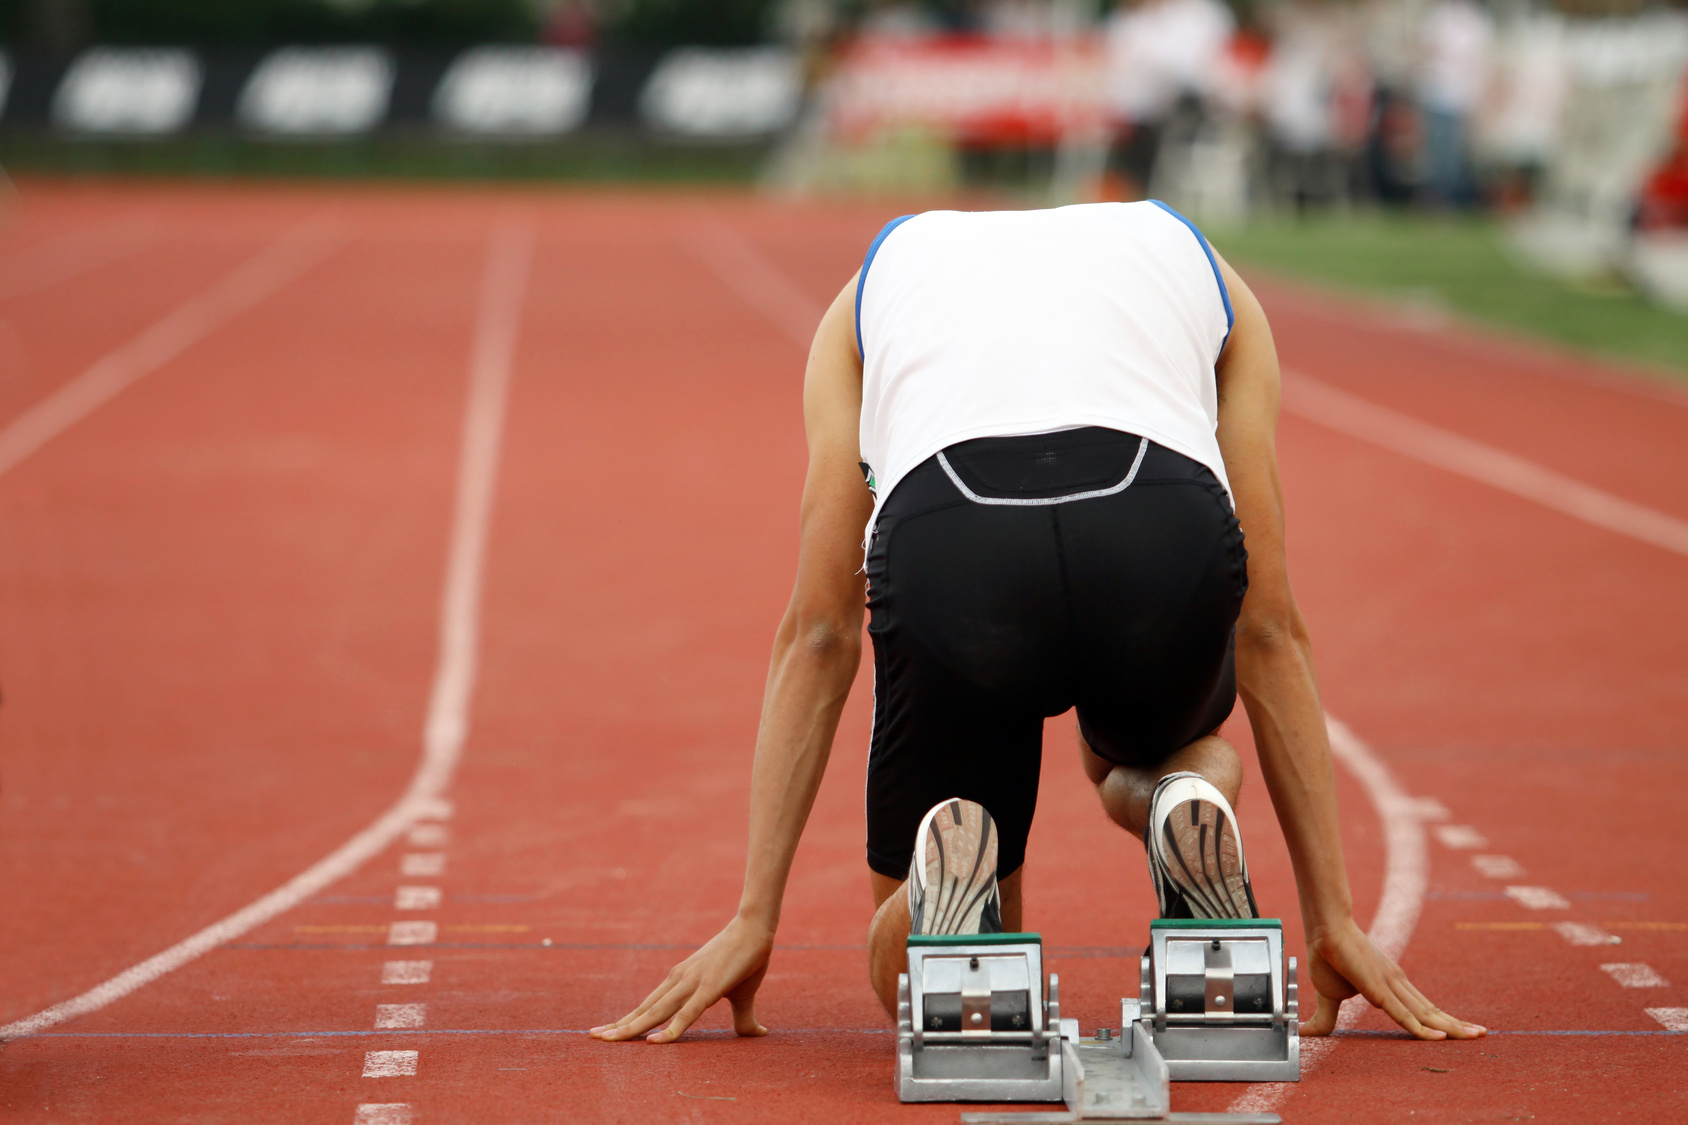 anxiety research within sport psychology Of research has been conducted examining the relationship between anxiety and performance within the field of athletics this paper will review the relevant research.